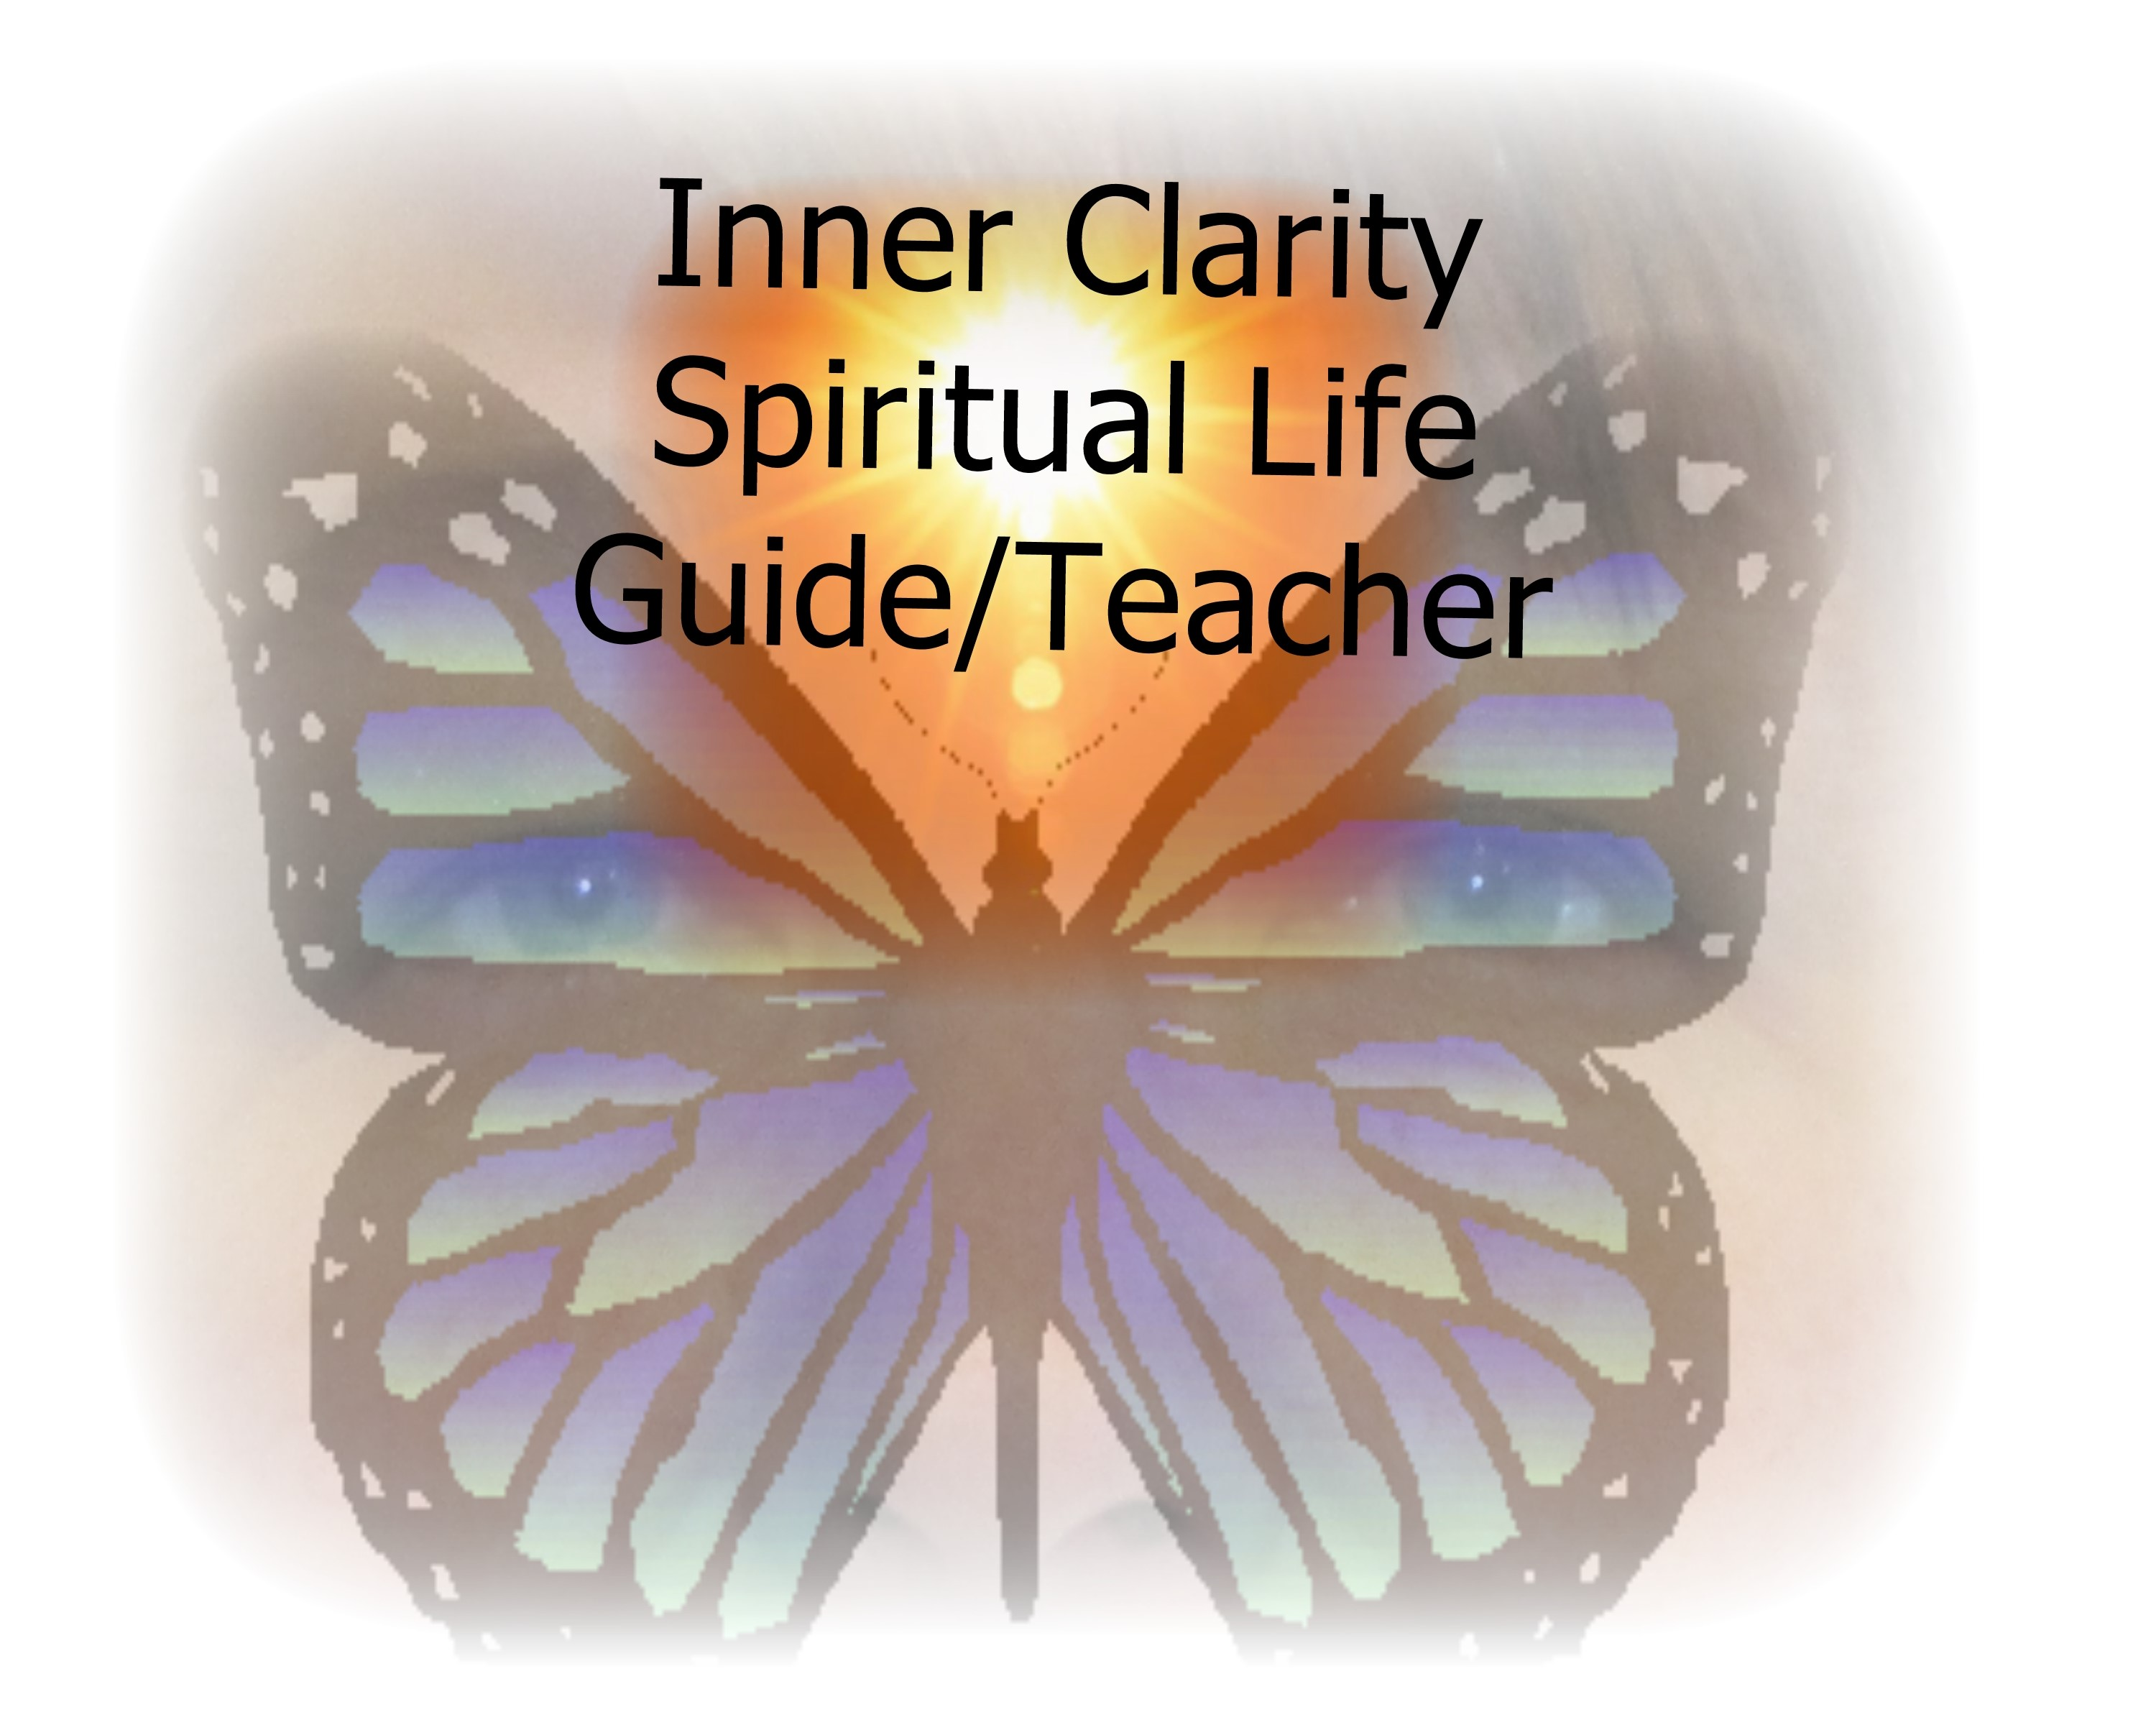 Inner Clarity Spiritual Life Guide Teacher-March 2015